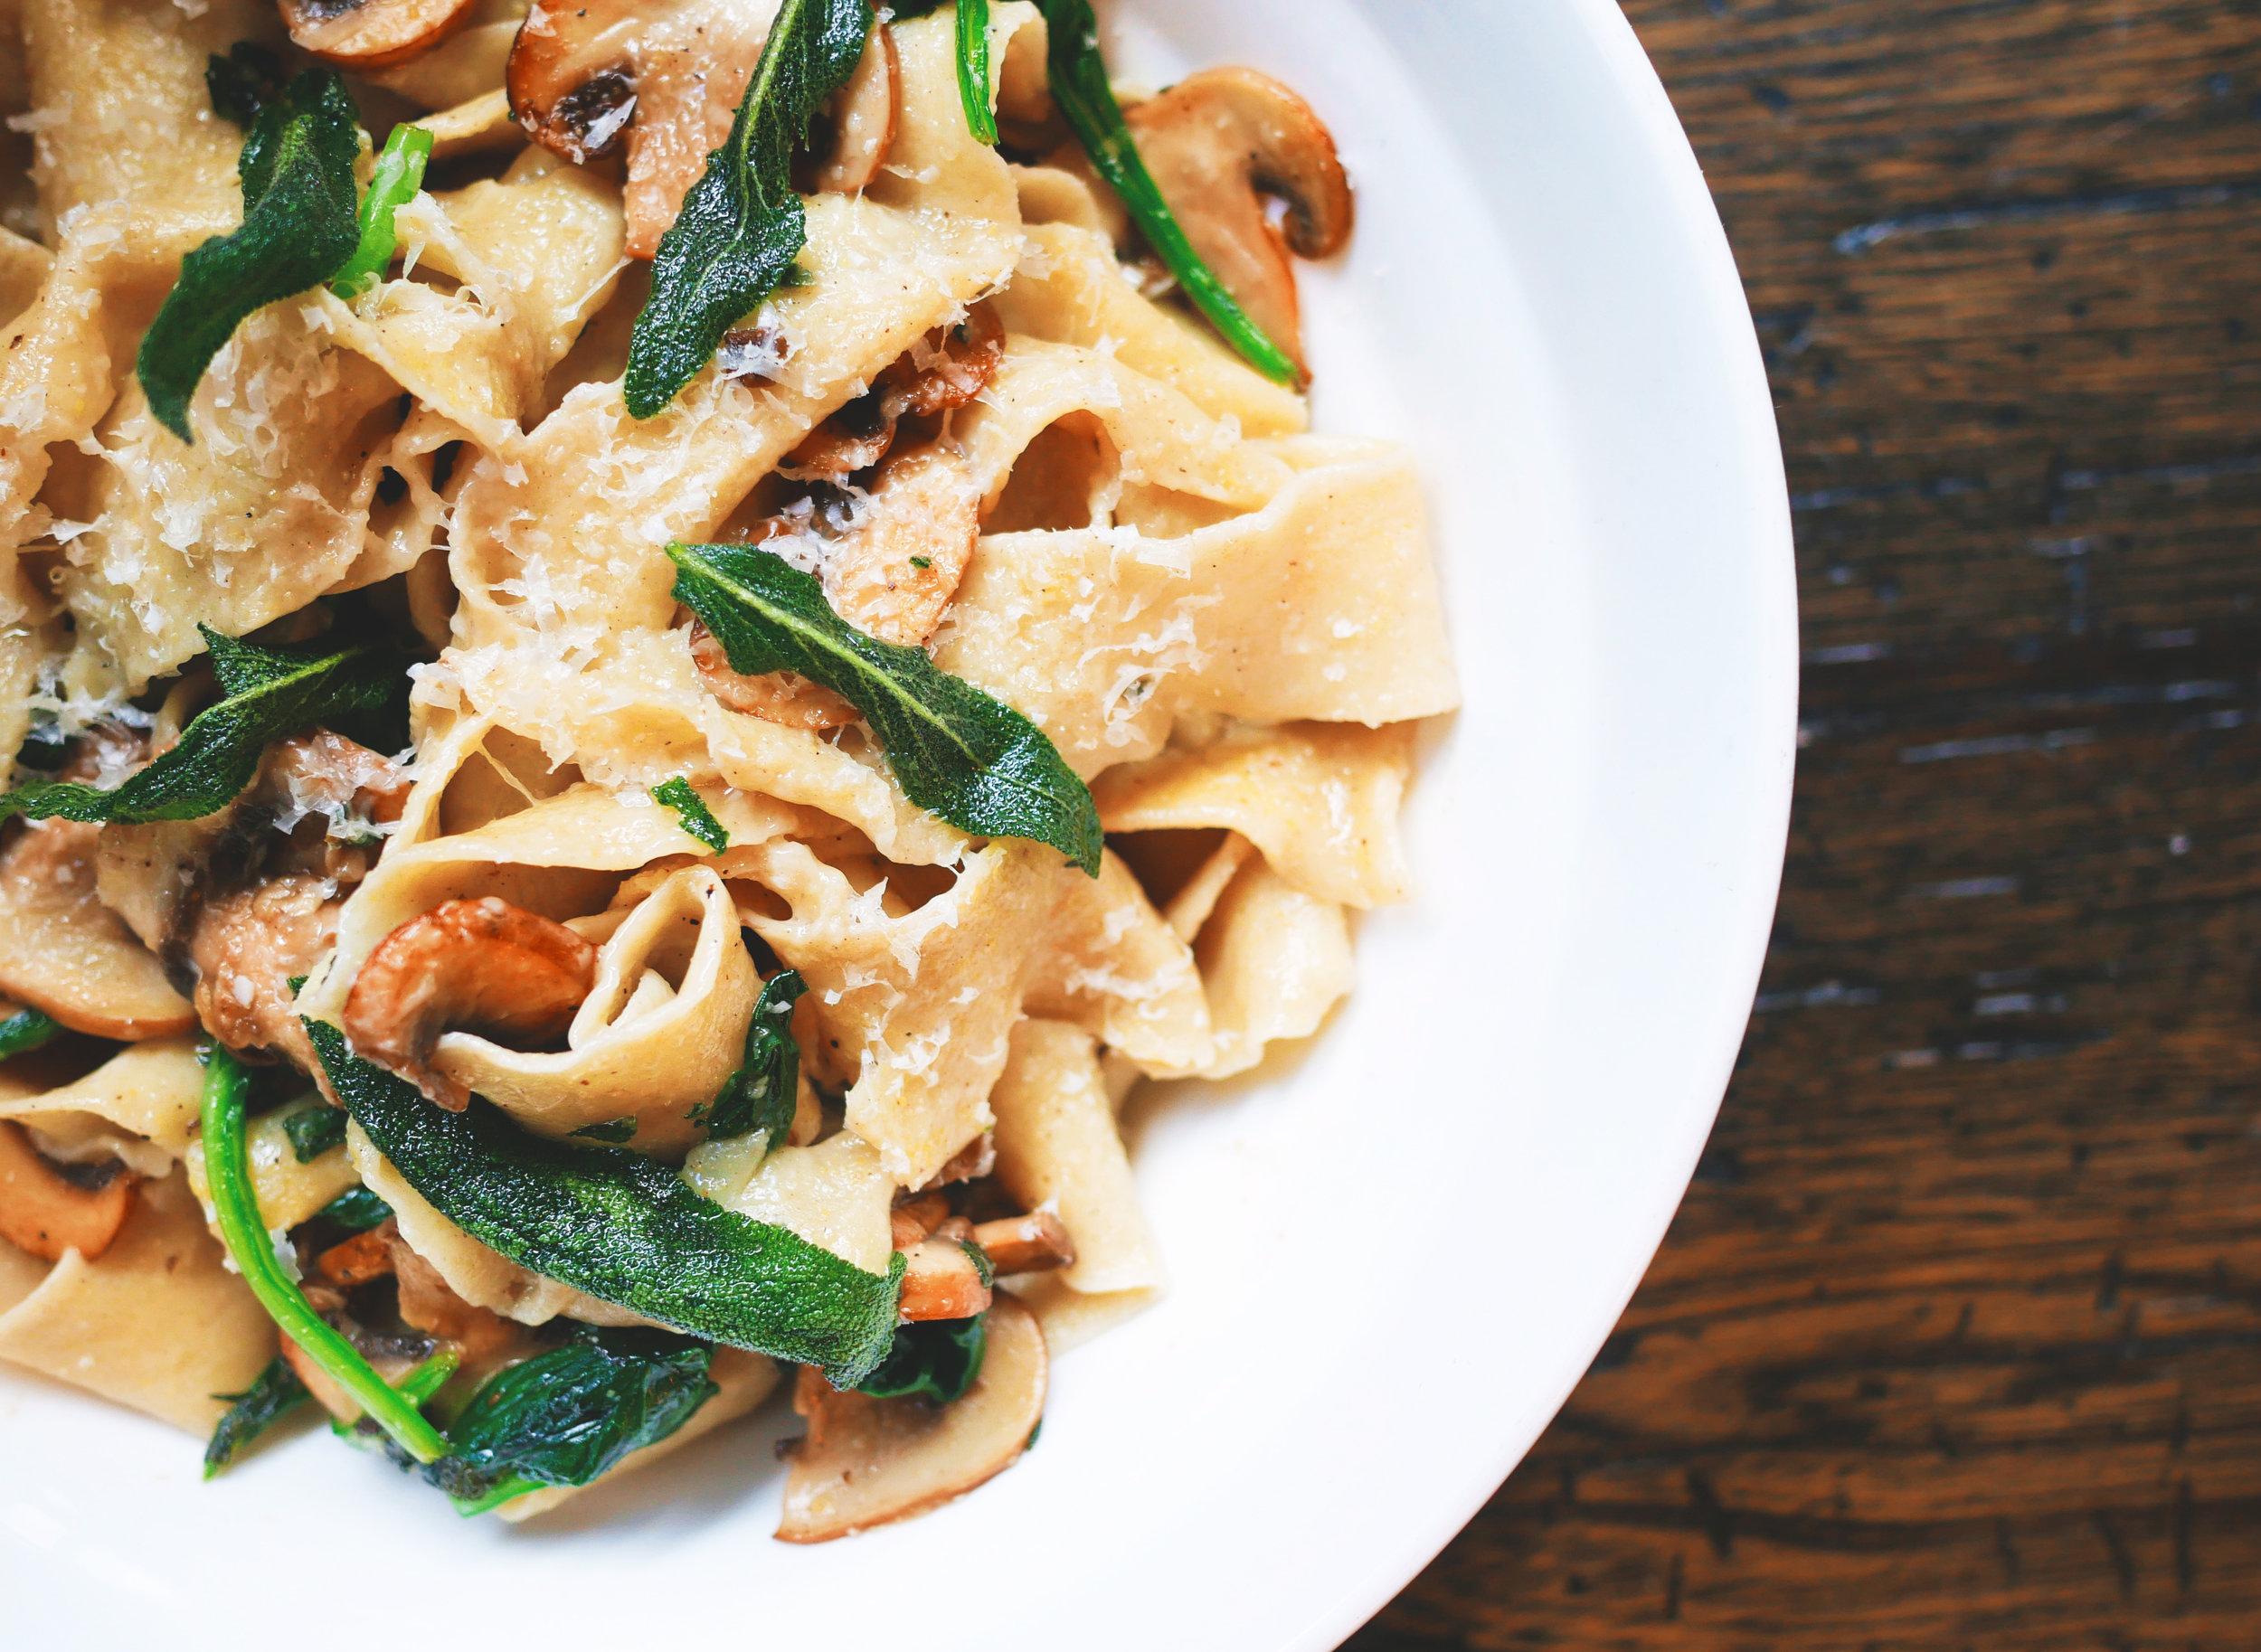 Pasta - Discover our unique array of pastas with an exquisite twist